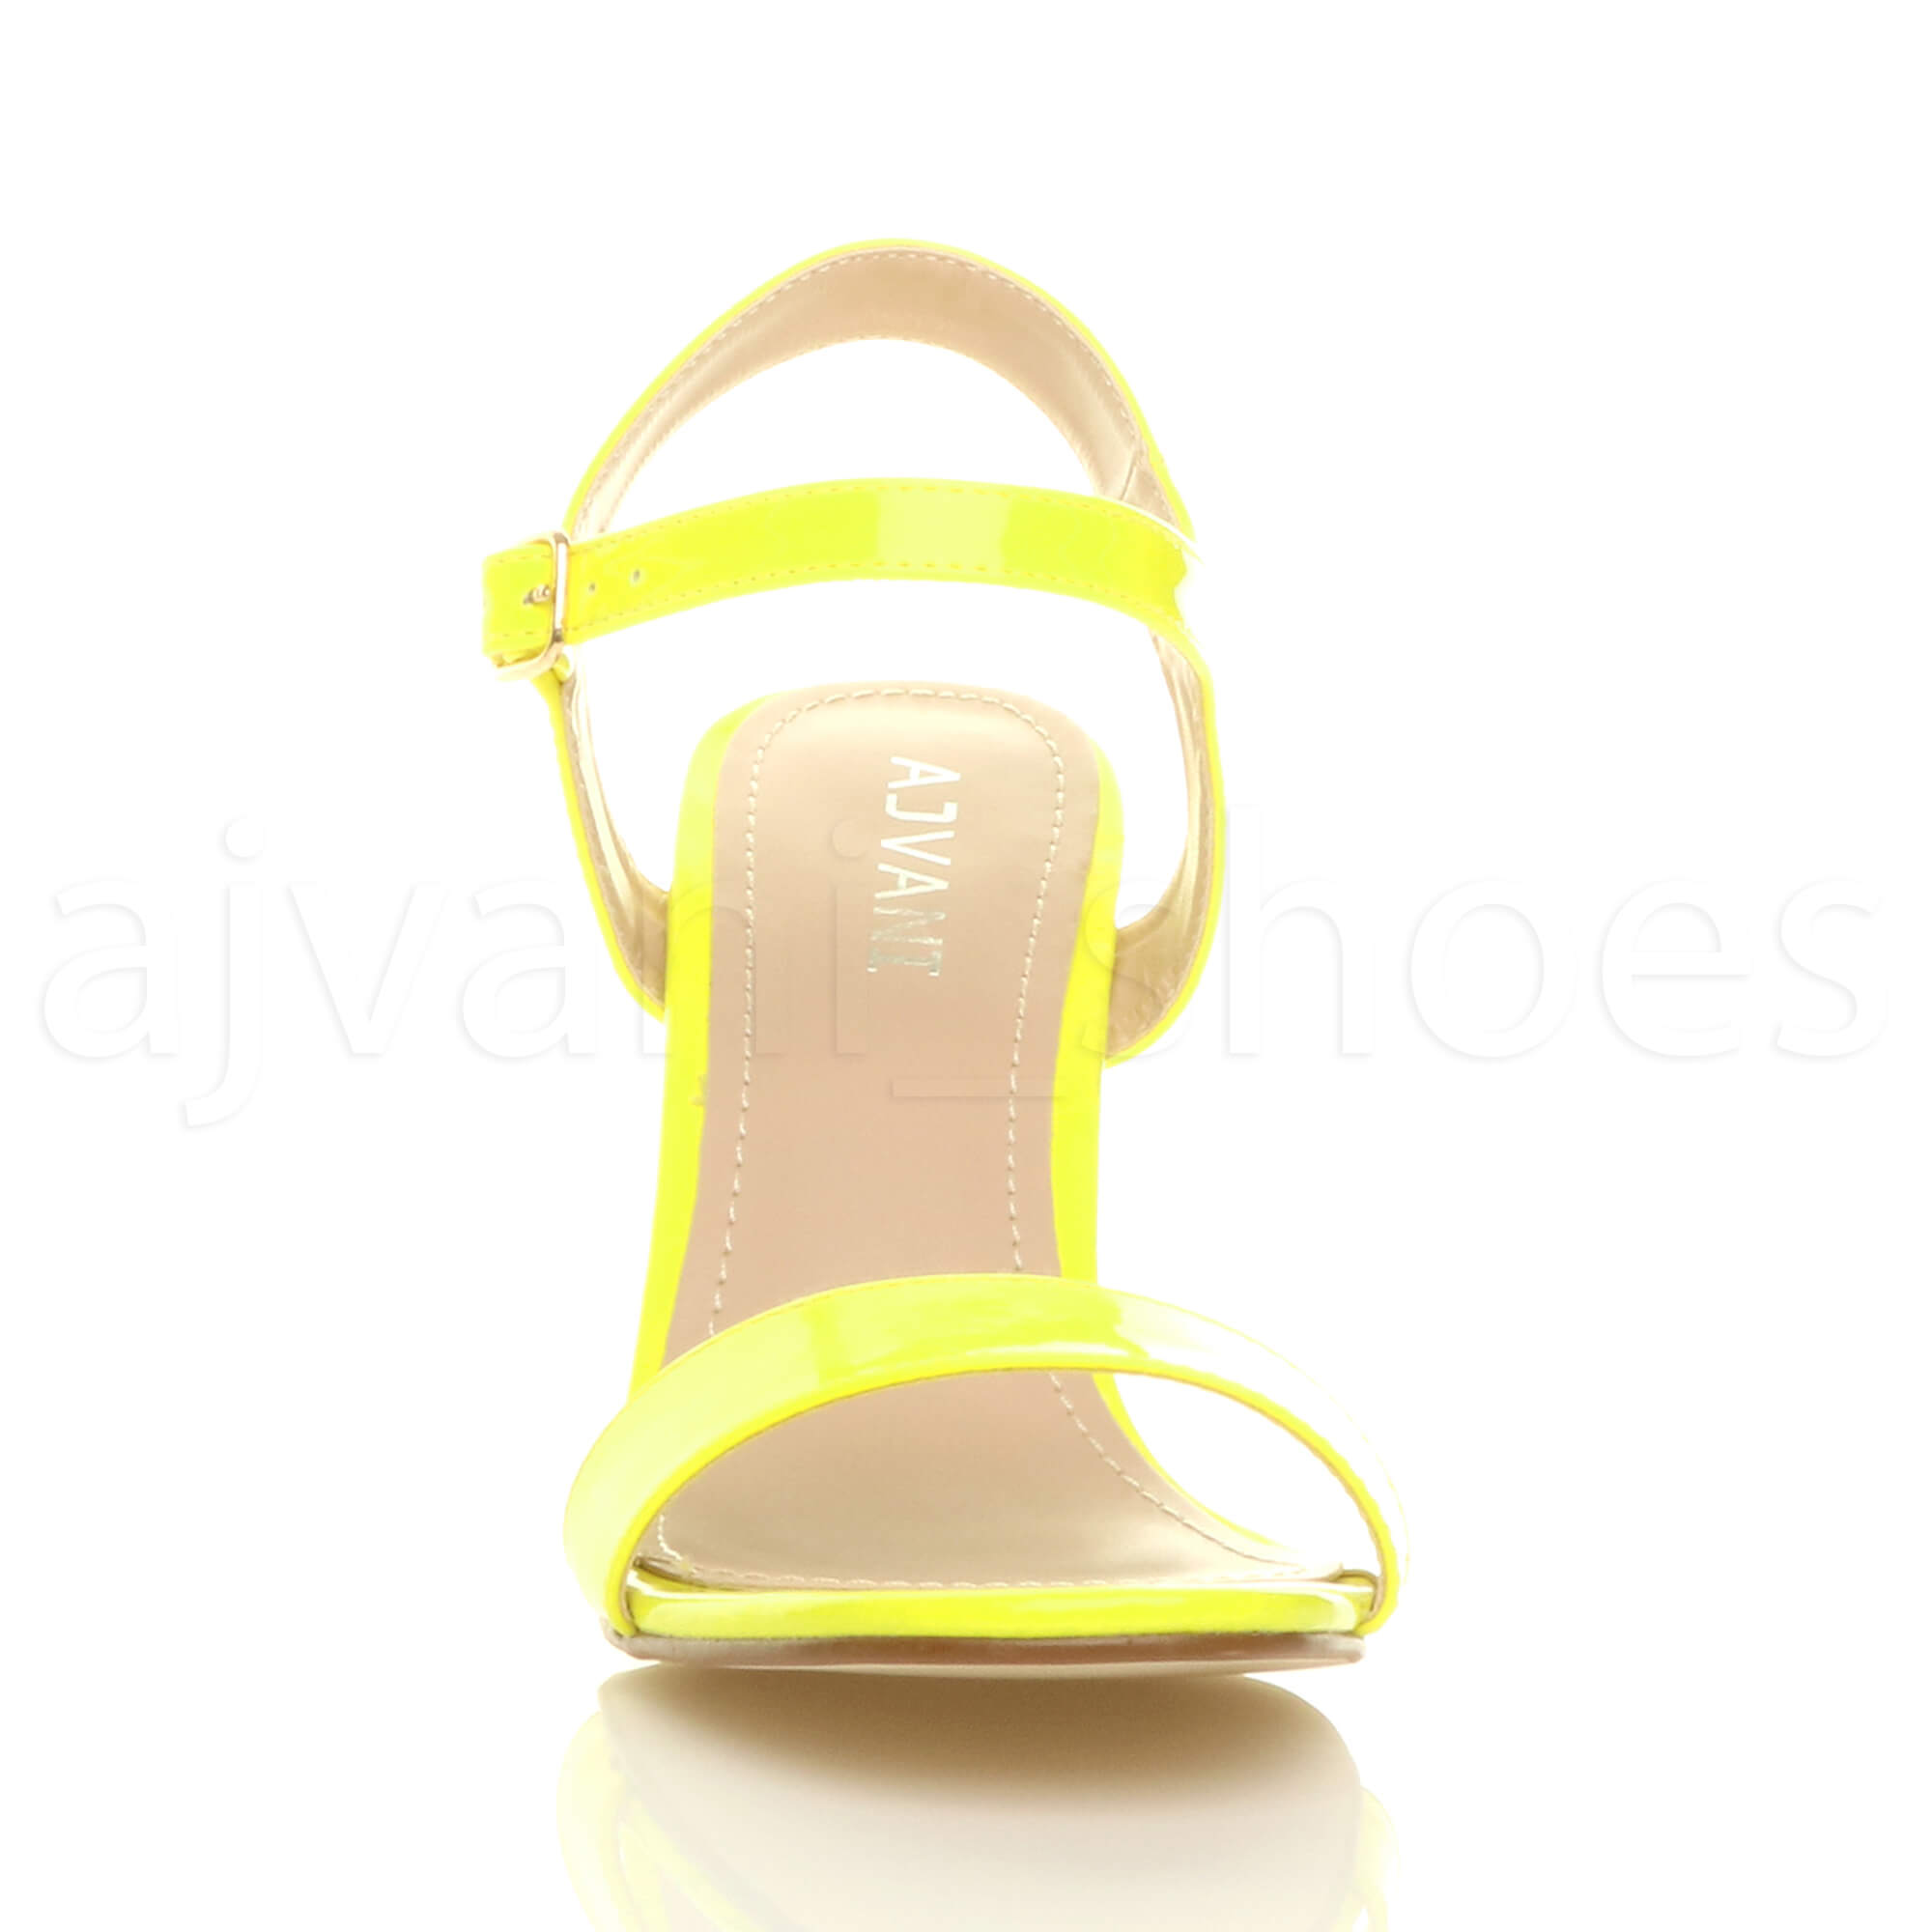 WOMENS-LADIES-HIGH-HEEL-BUCKLE-STRAPPY-BASIC-BARELY-THERE-SANDALS-SHOES-SIZE thumbnail 90